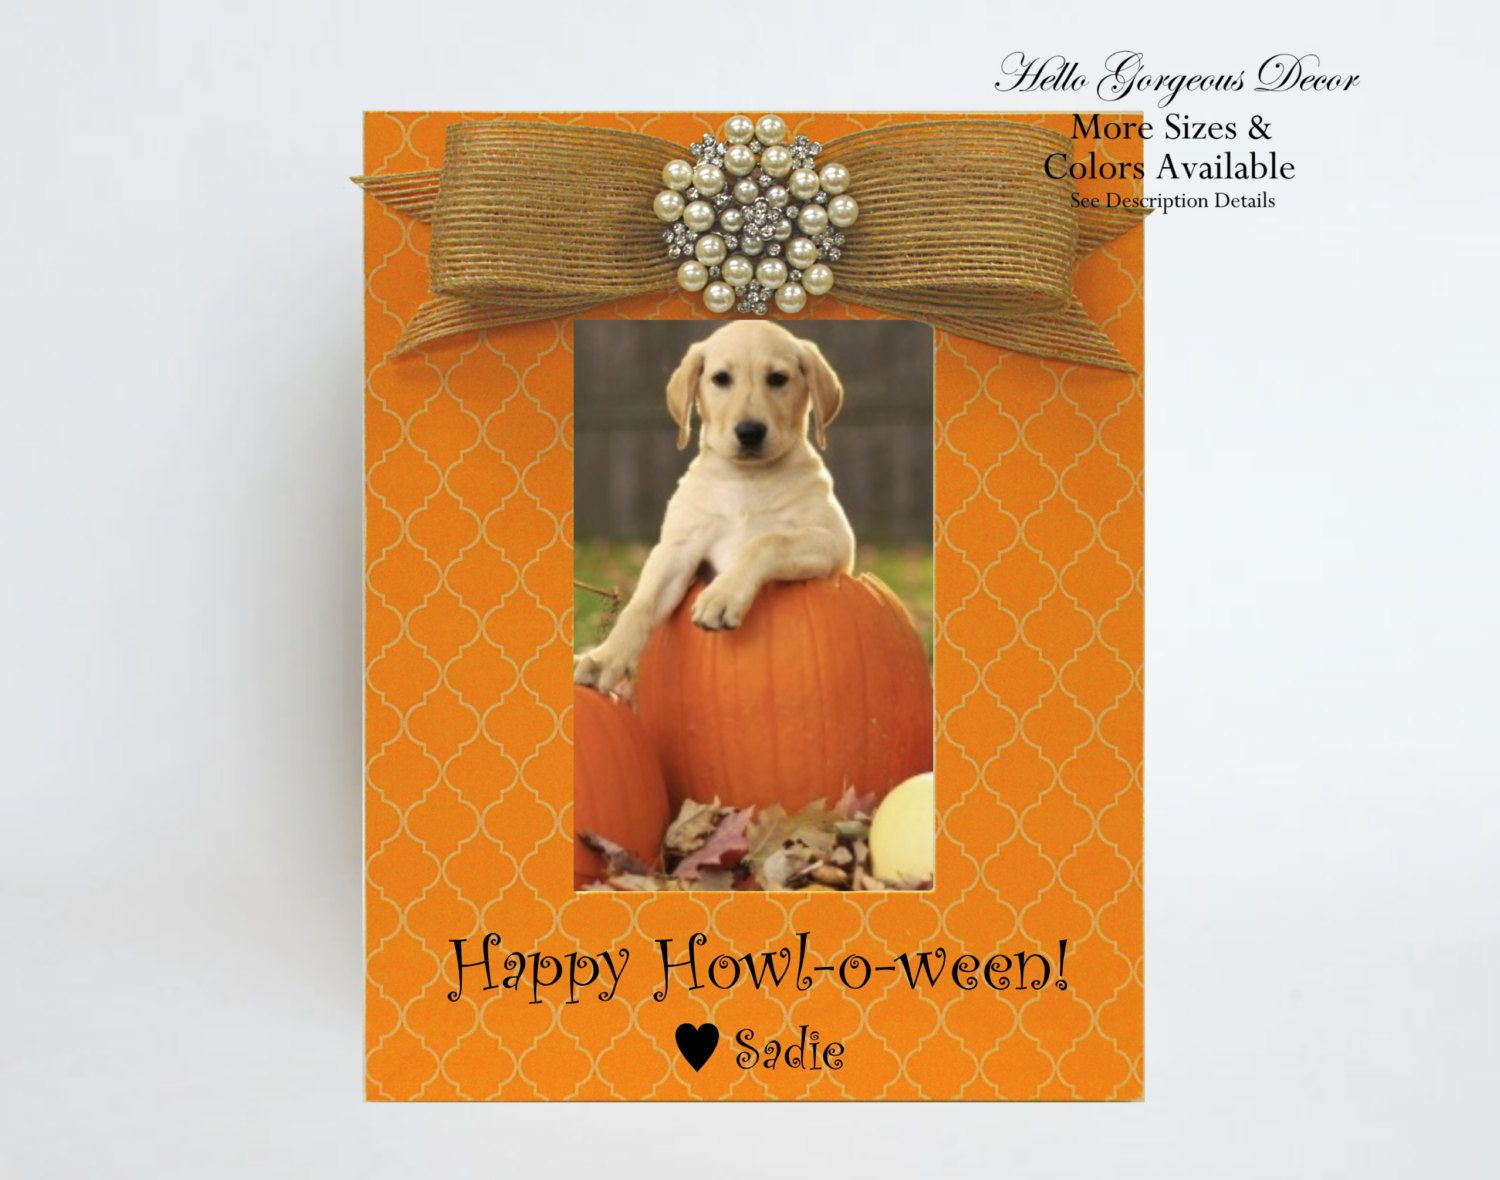 dog picture frame gift halloween puppy costume new dog gift photo frame new puppy gift ideas